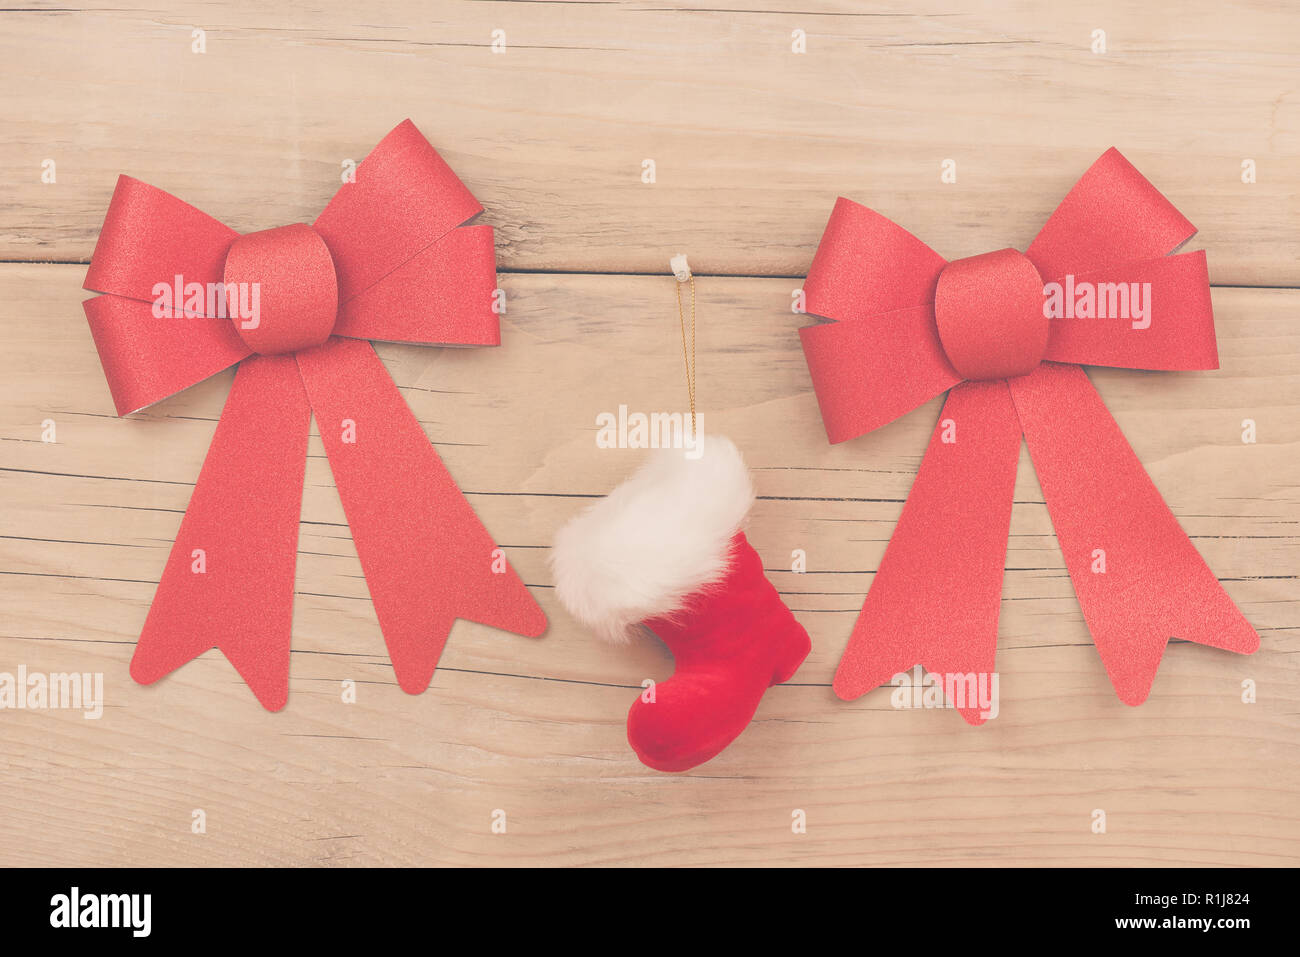 Christmas arrangement with red boot and two red bows on wooden background - Stock Image